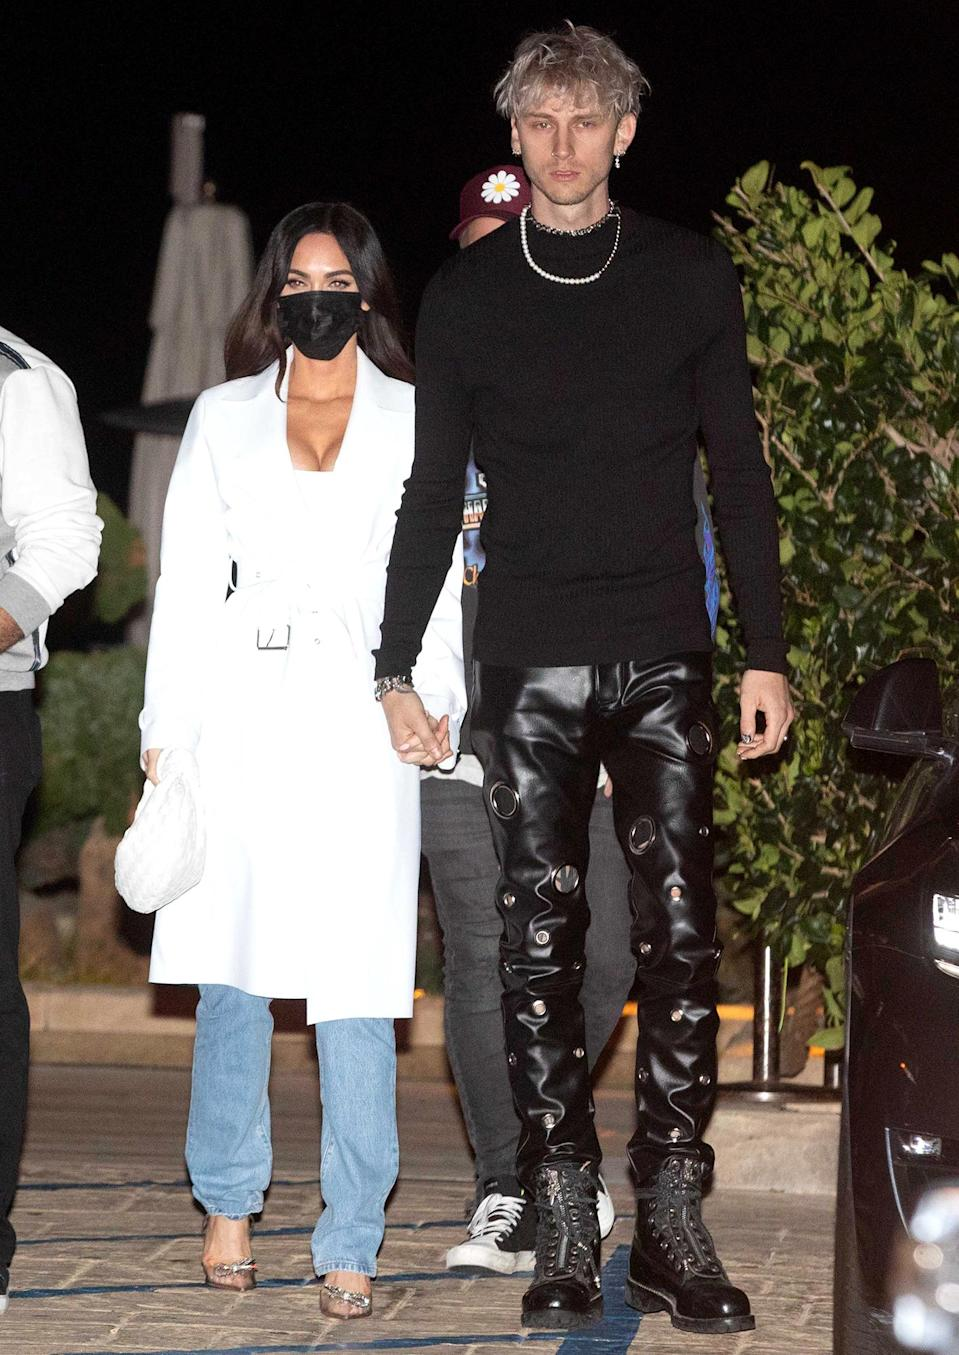 <p>Megan Fox and Machine Gun Kelly hold hands after dinner at Nobu in Malibu, California, over the weekend.</p>